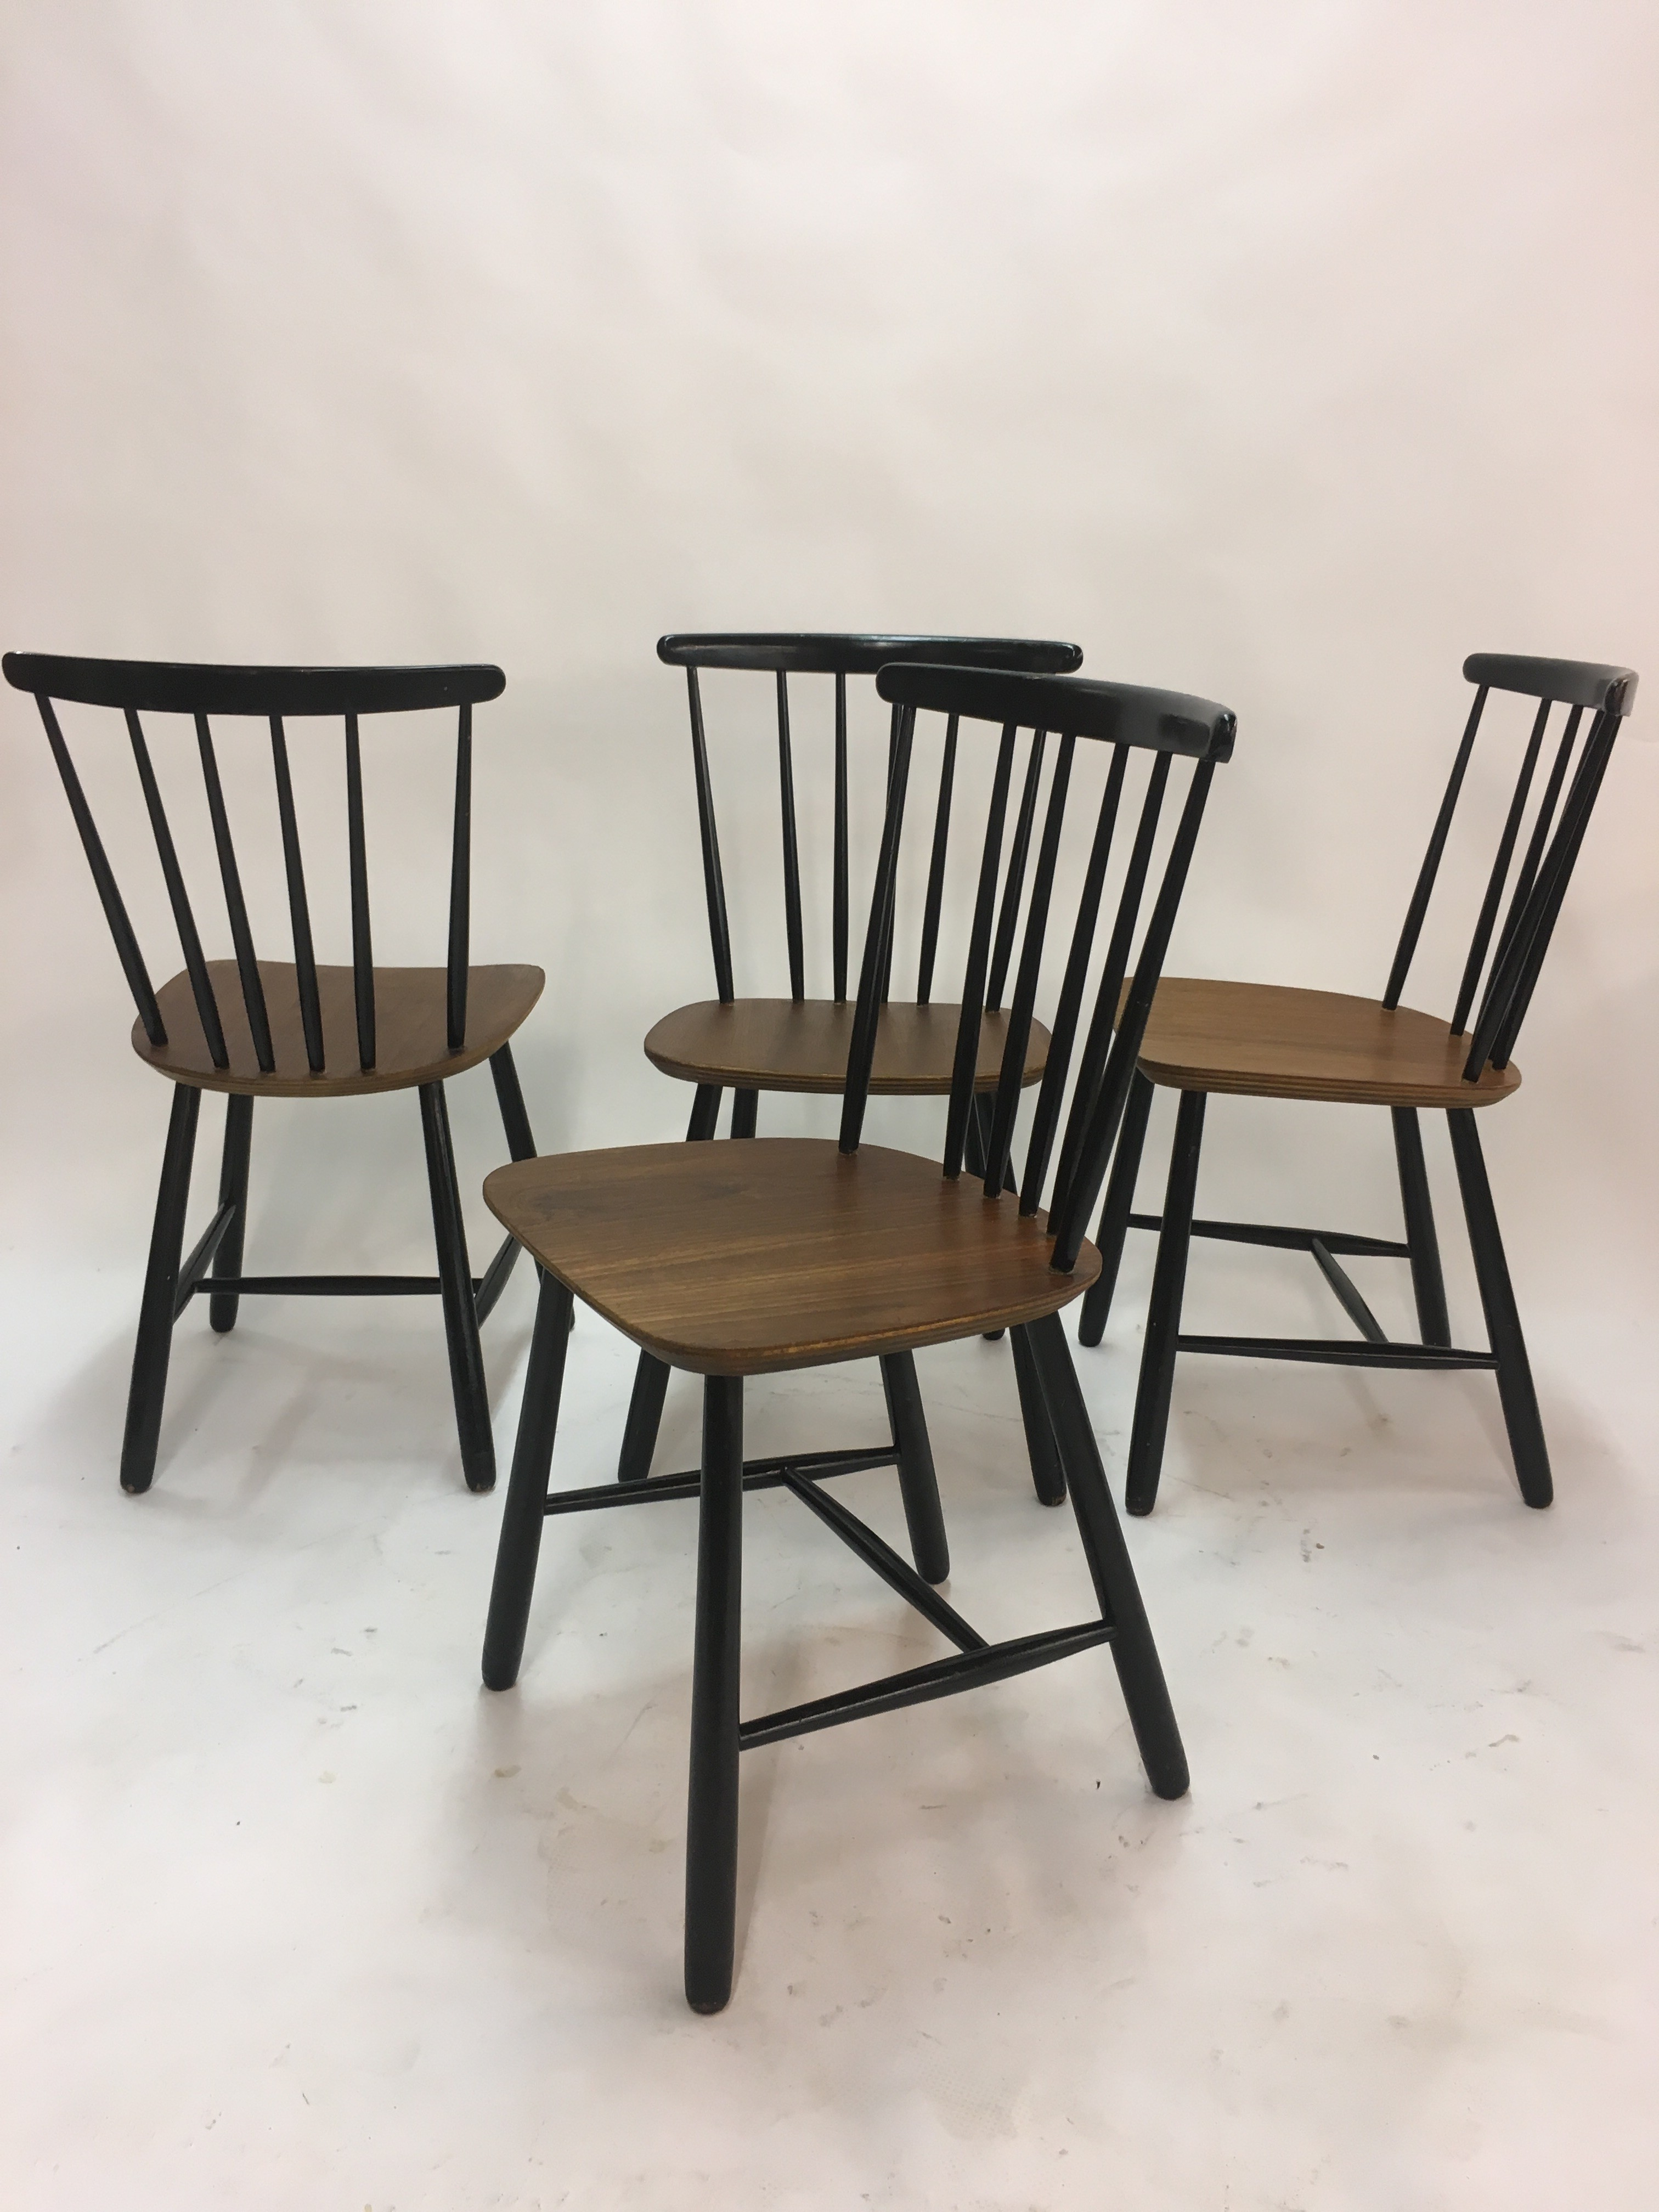 Poul Cadovius Set Of 4 Vintage Scandinavian Spindle Back Dining Chairs